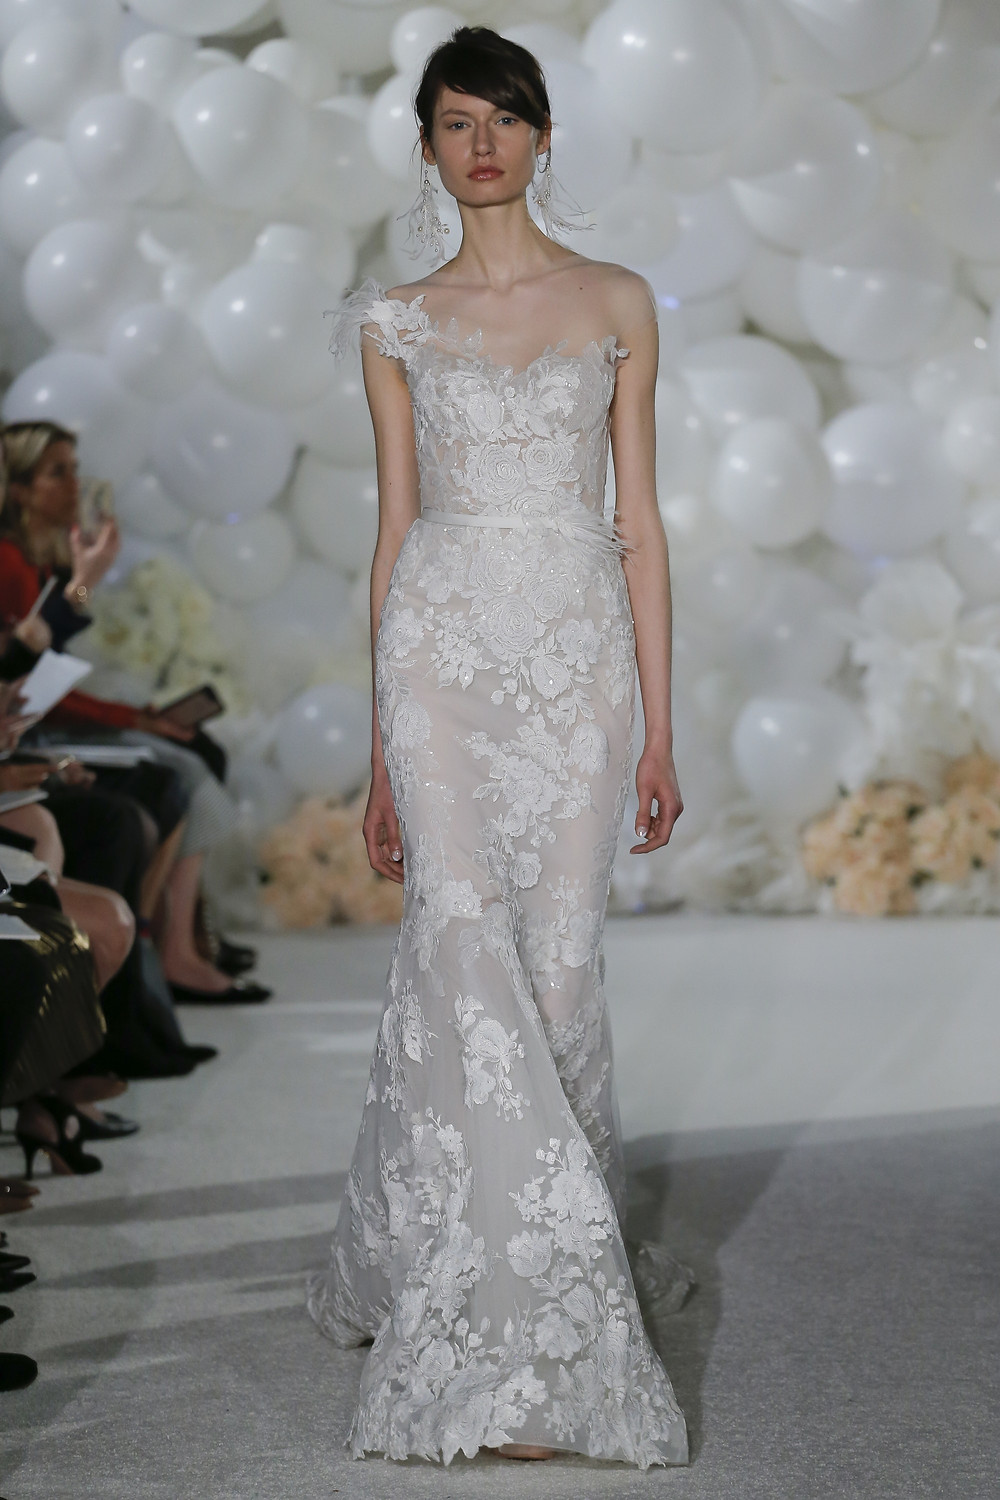 A Mira Zwillinger one shoulder, mermaid wedding dress with flowers